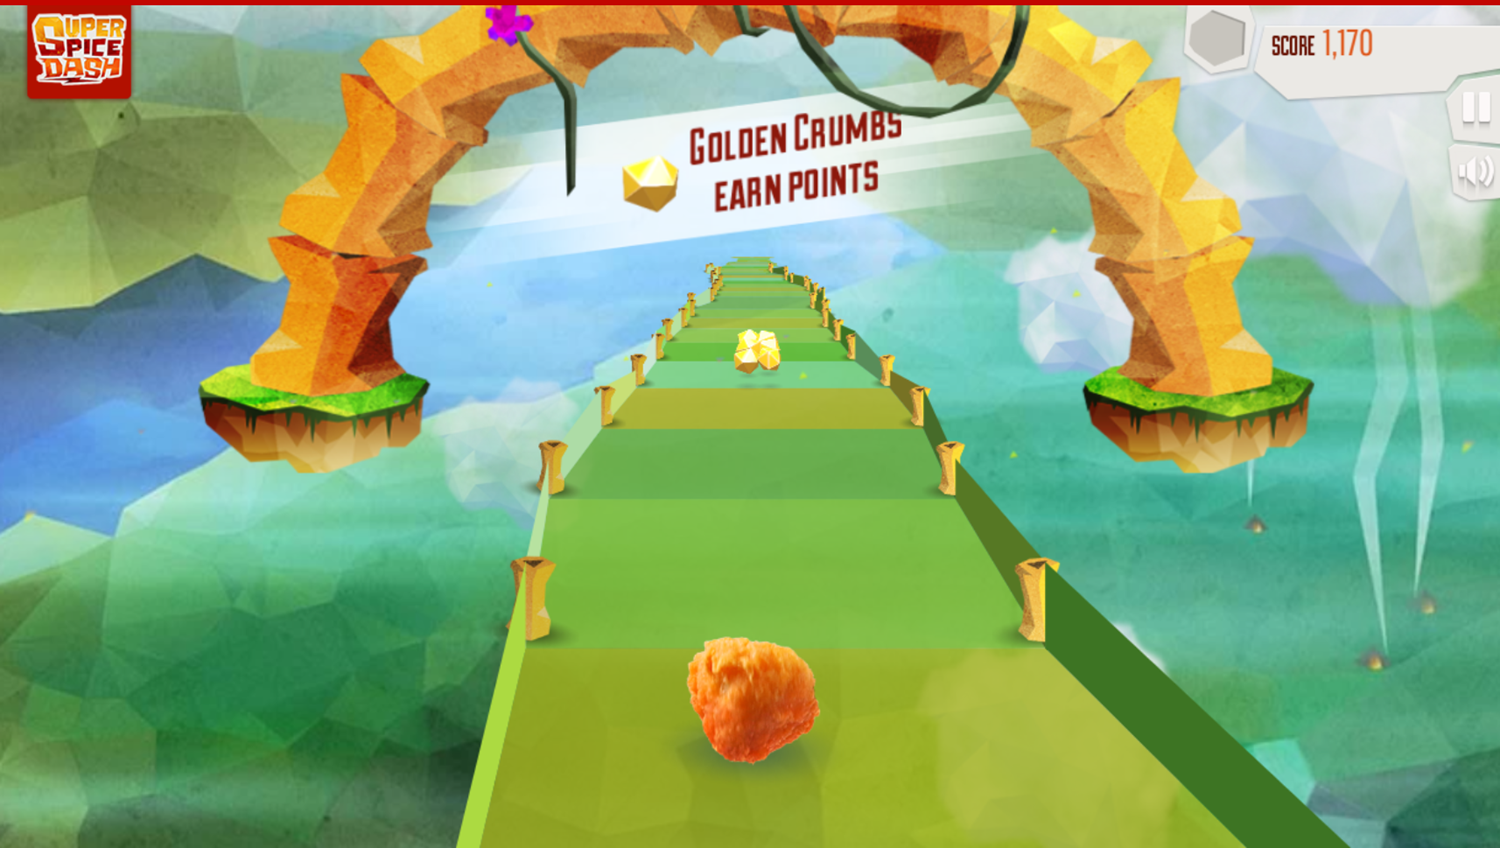 Super Spice Dash Game How To Earn Points Screenshot.